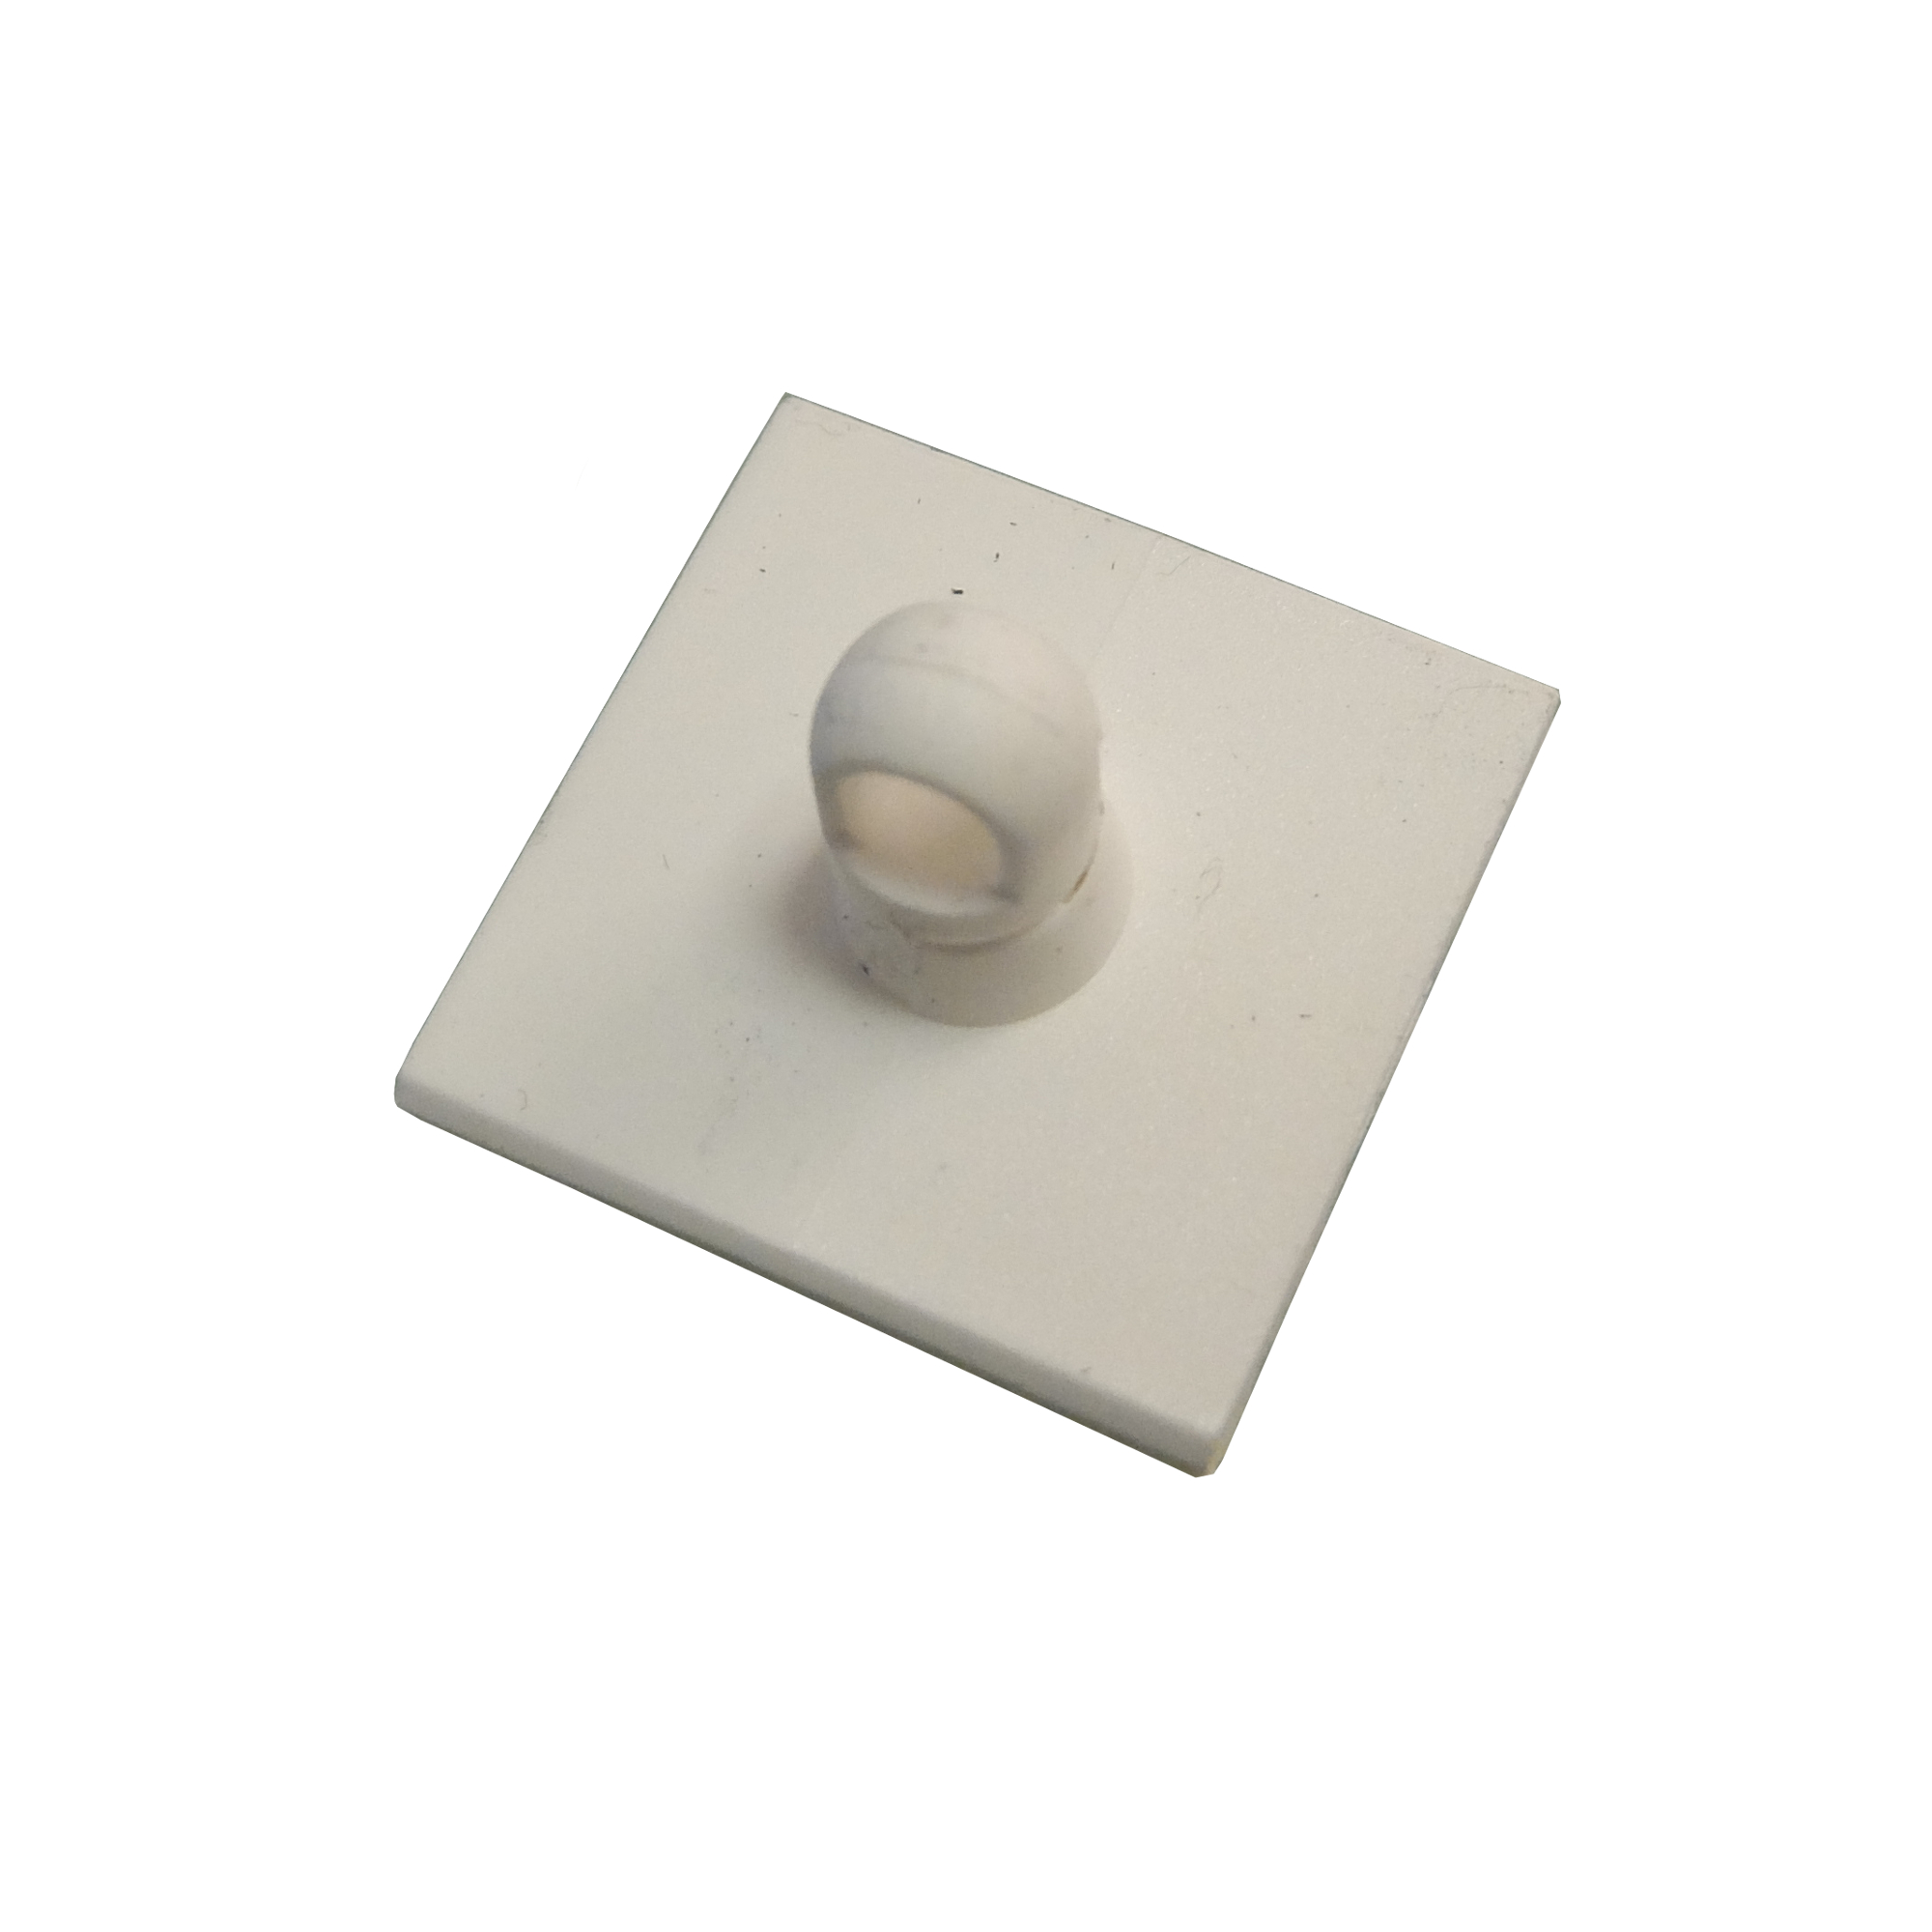 White ABS Ceiling Plate with Swivel Eye and Adhesive Pad